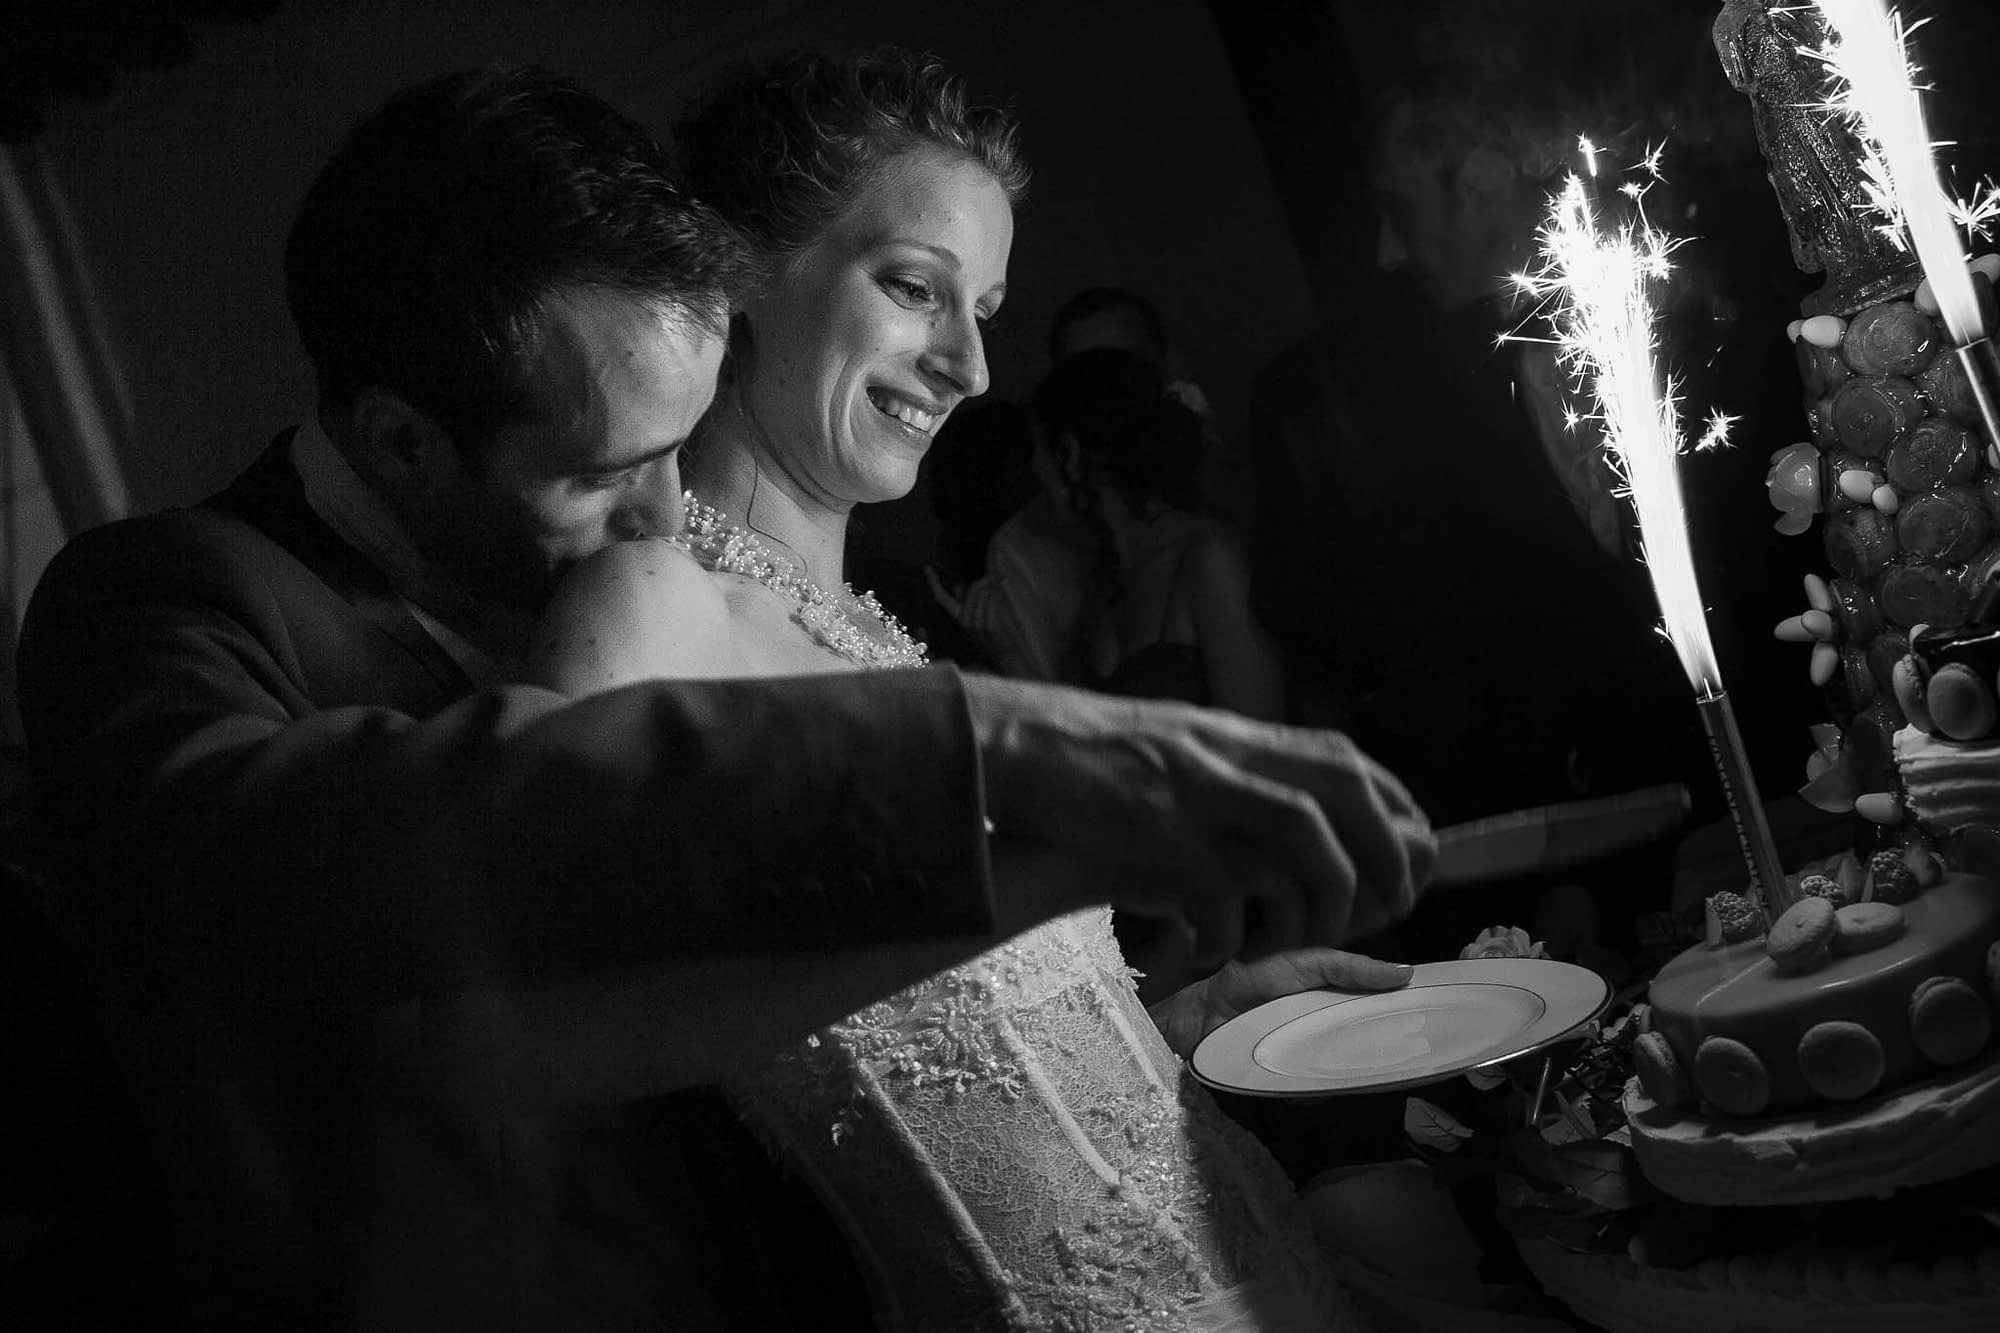 page mariage@photo-network.fr photographes mariage originale